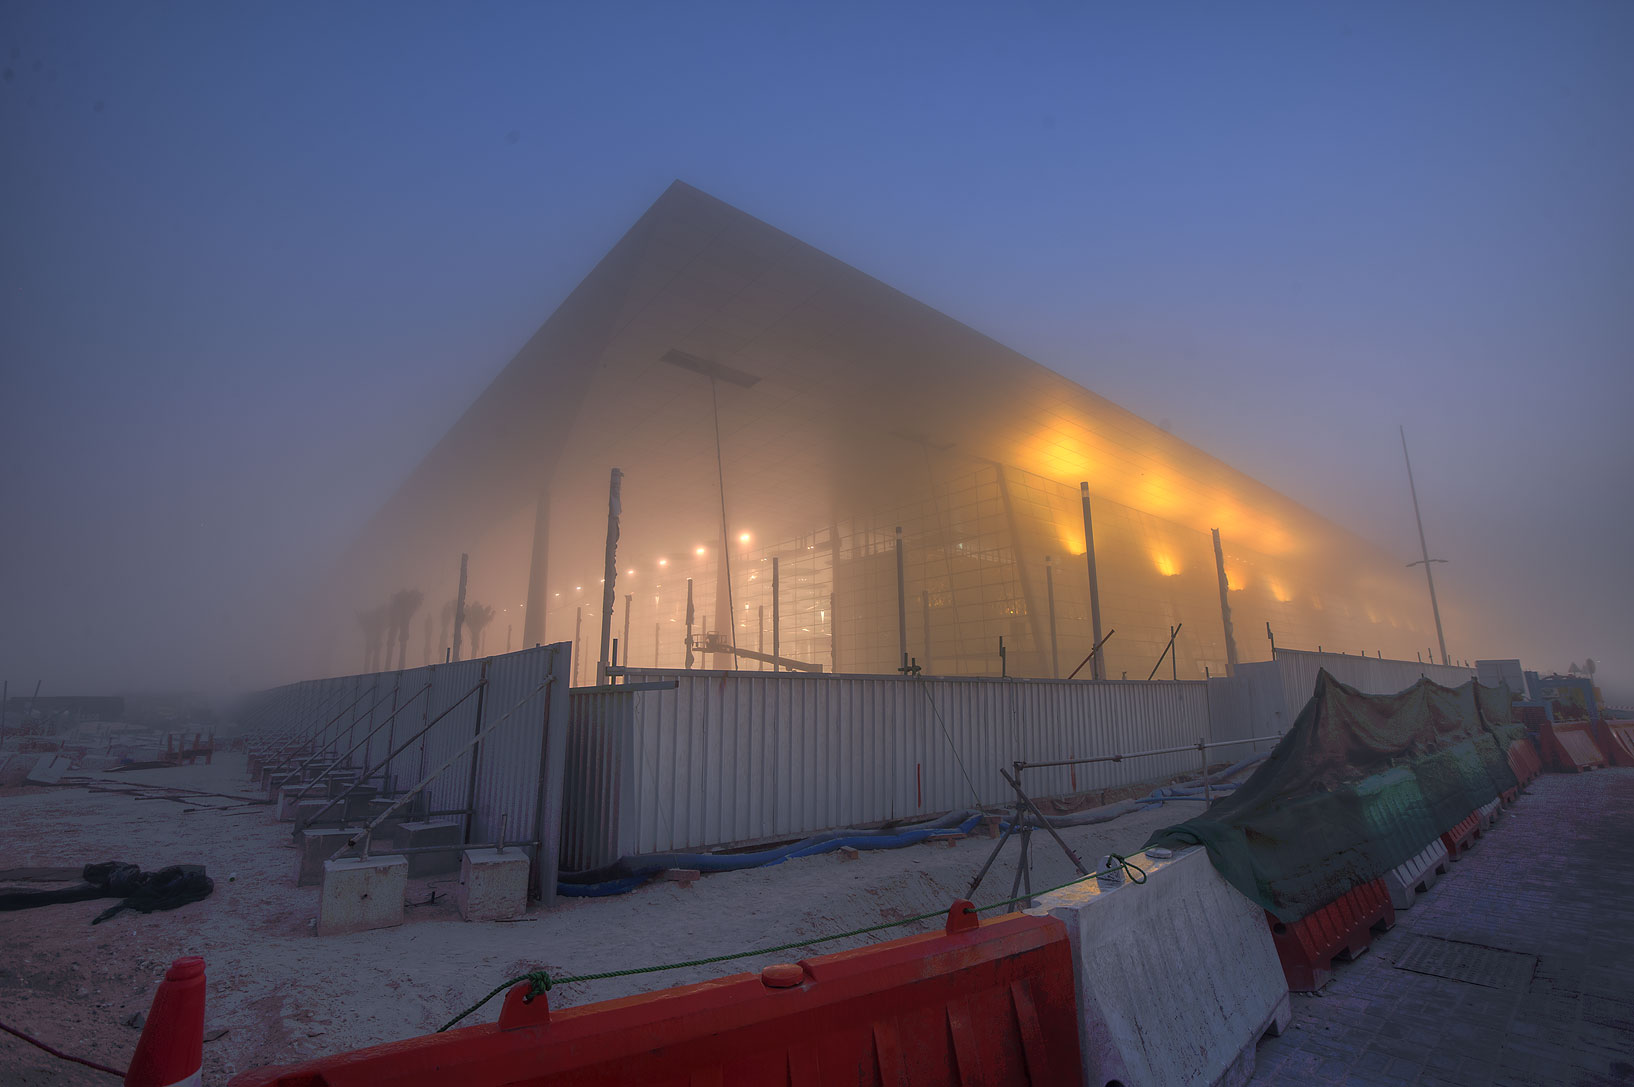 Doha Convention Center (under construction) in West Bay in fog. Doha, Qatar